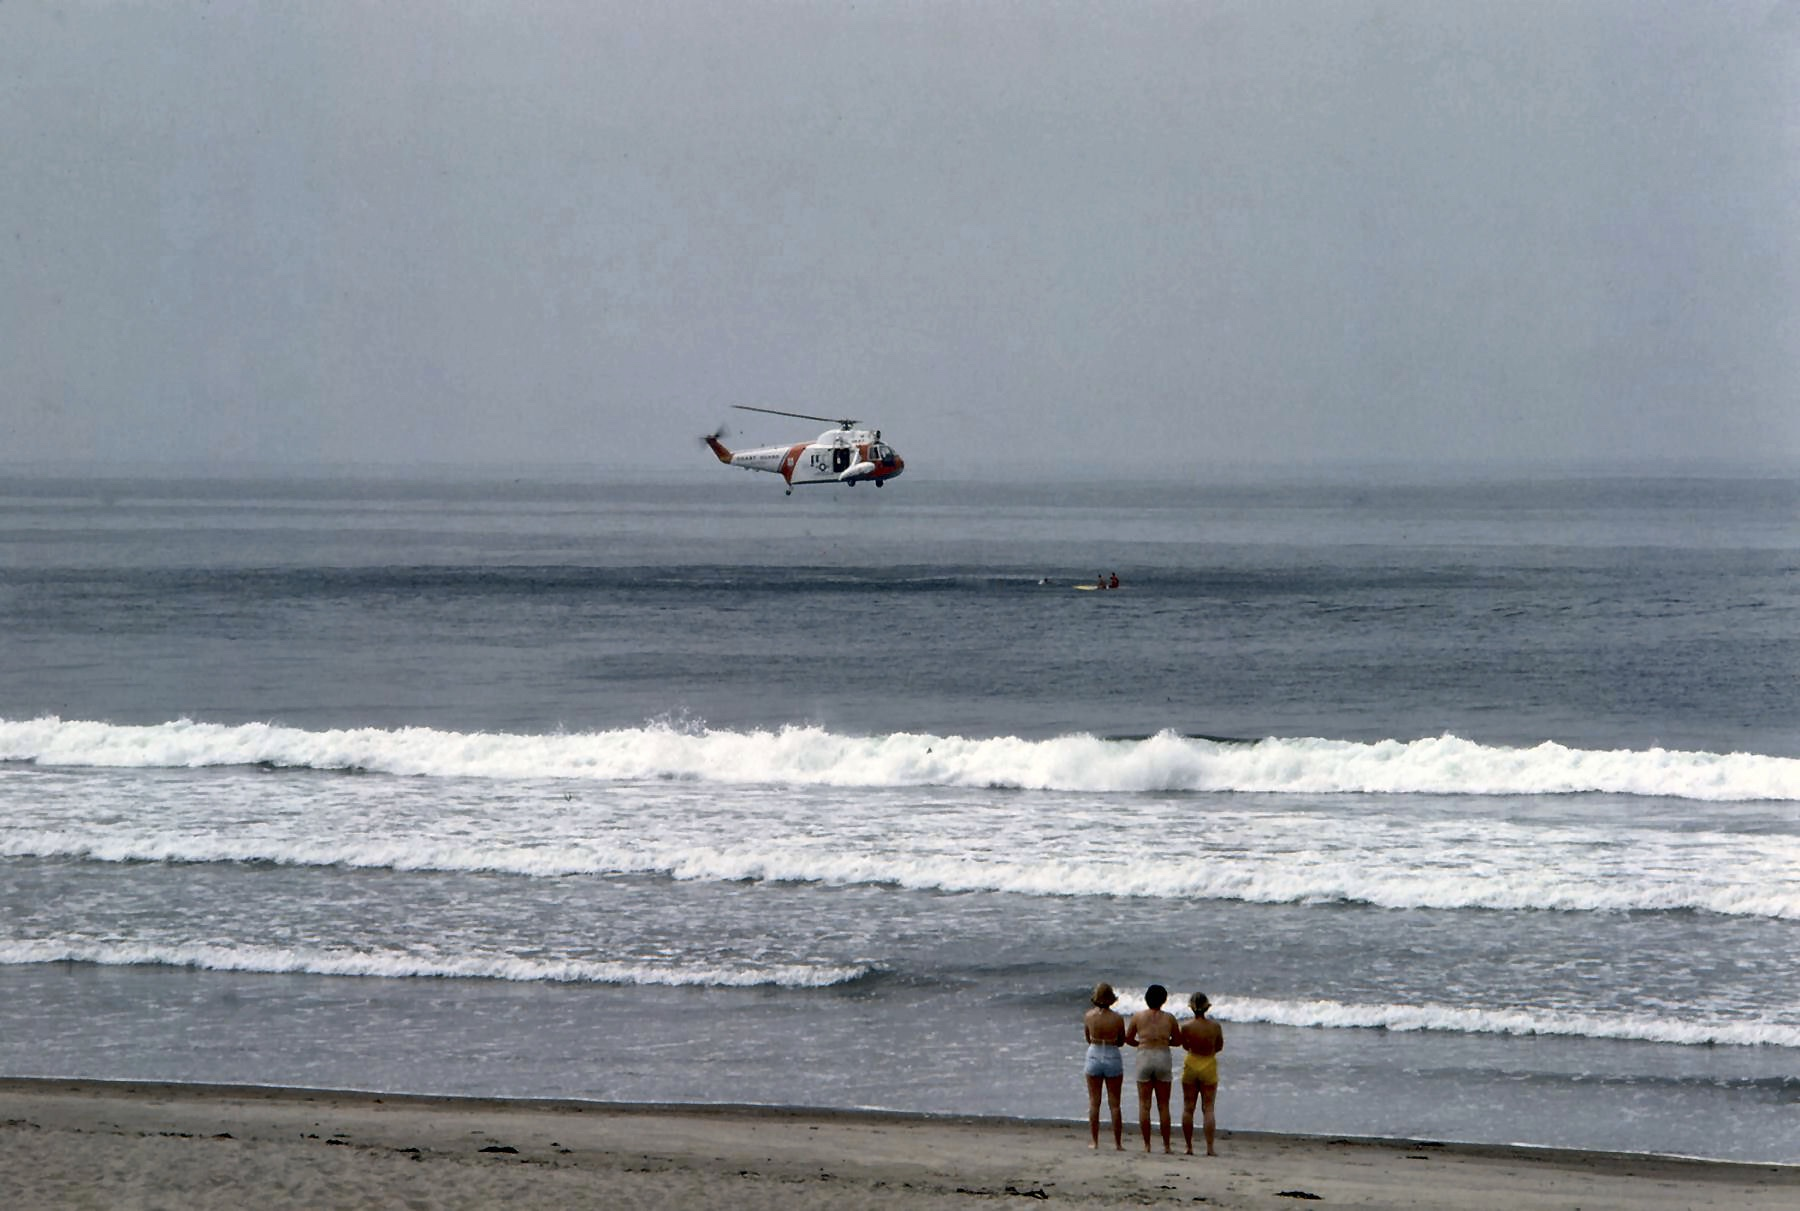 Helicopter Rescue – Stinson Beach